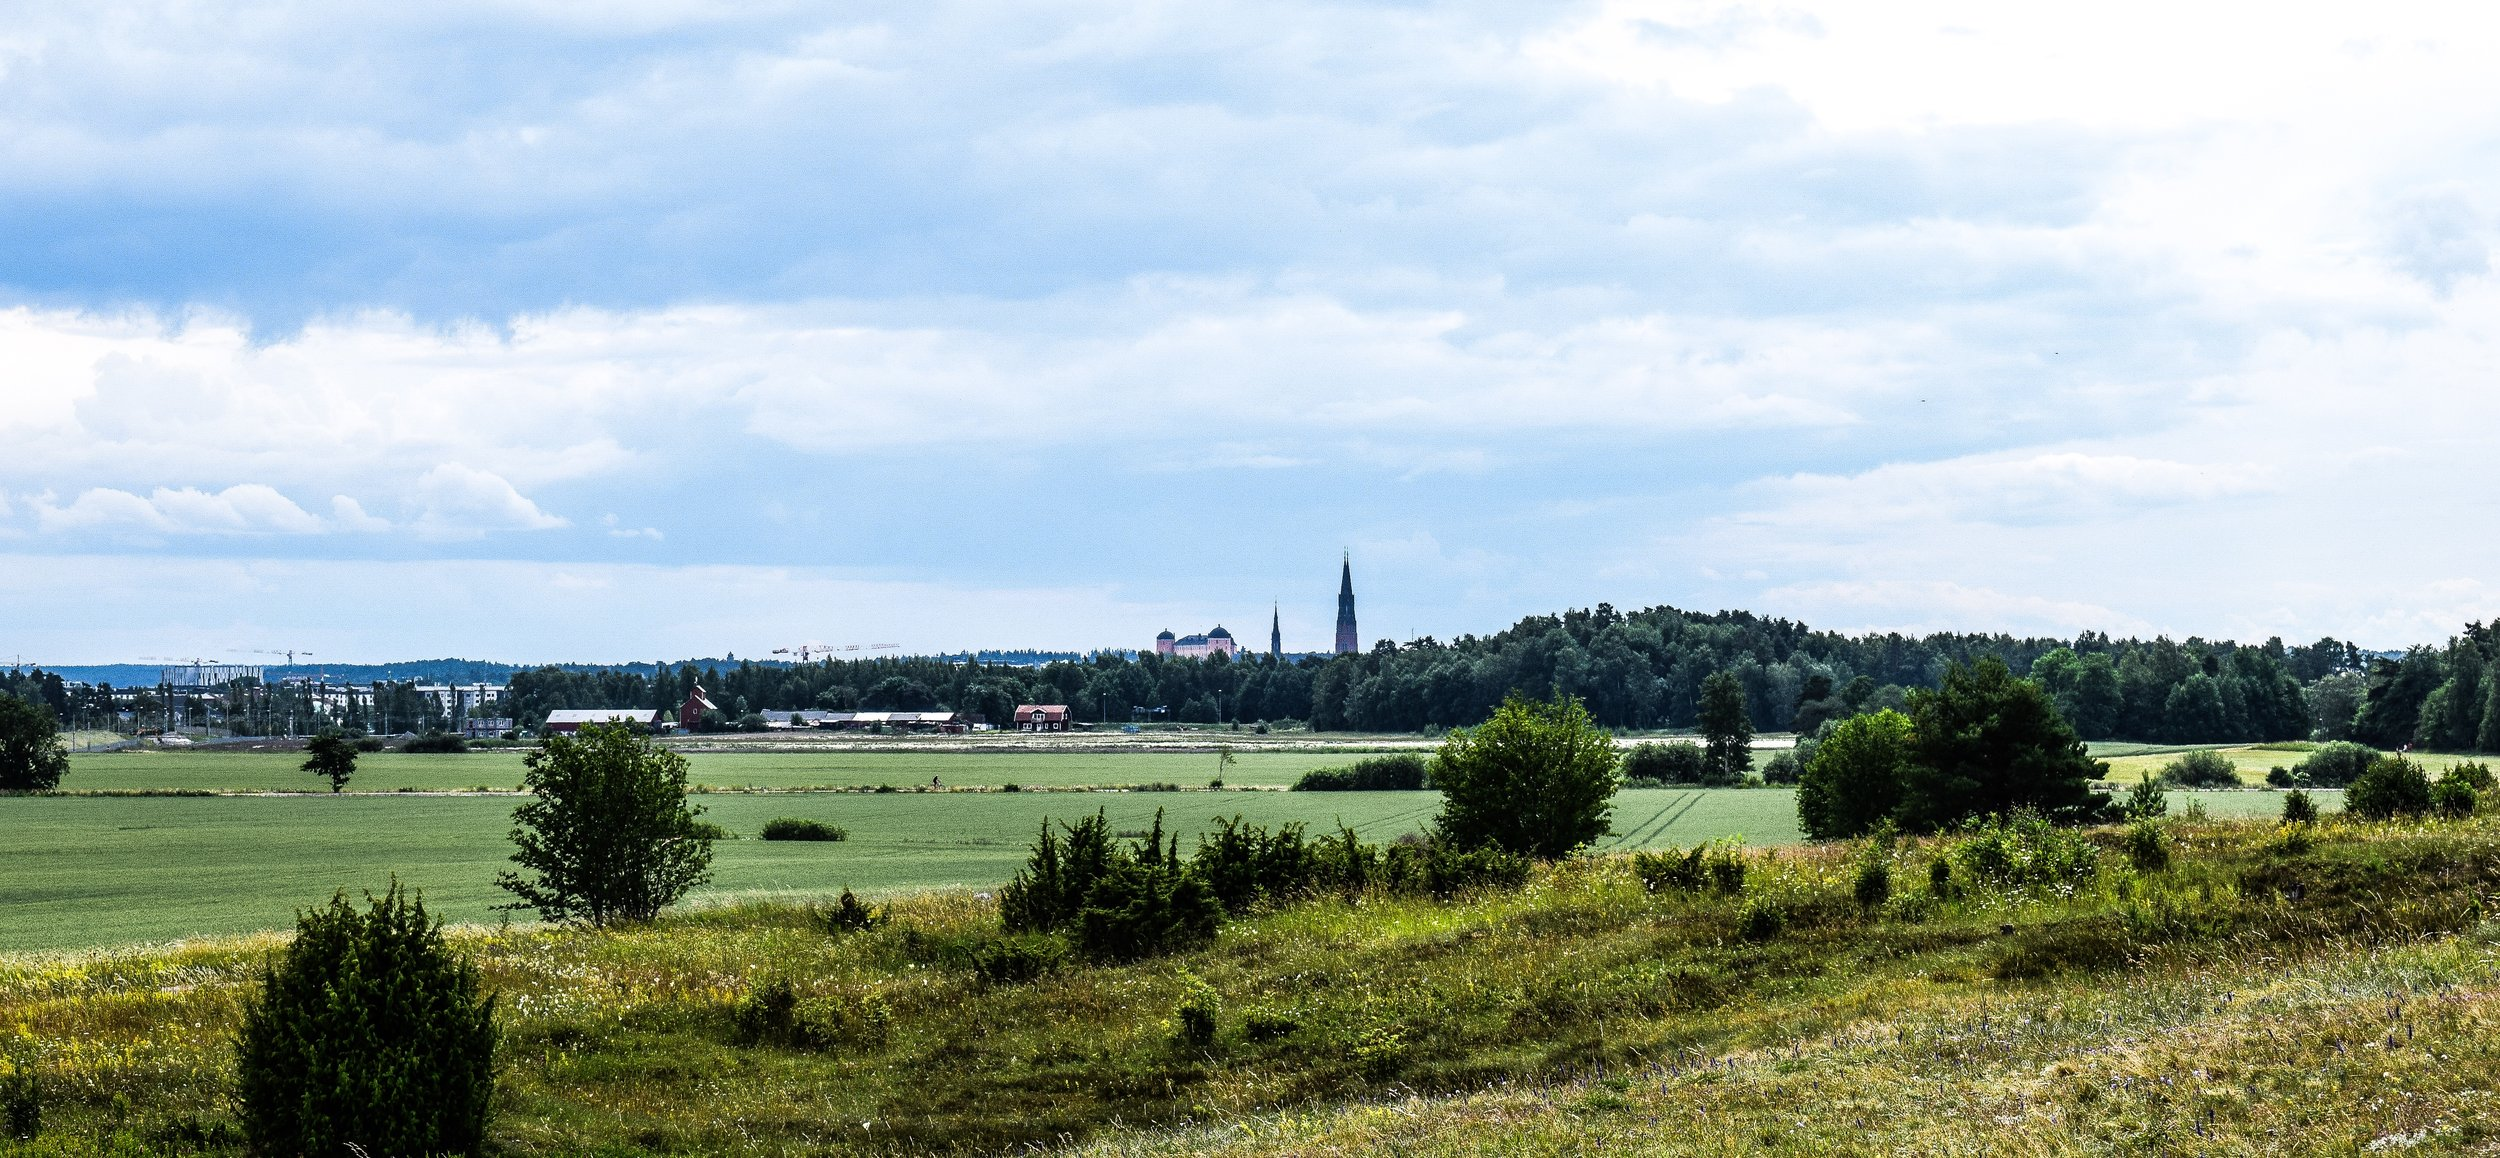 Uppsala can be seen from Gamla Uppsala - castle and cathedral are clearly visible